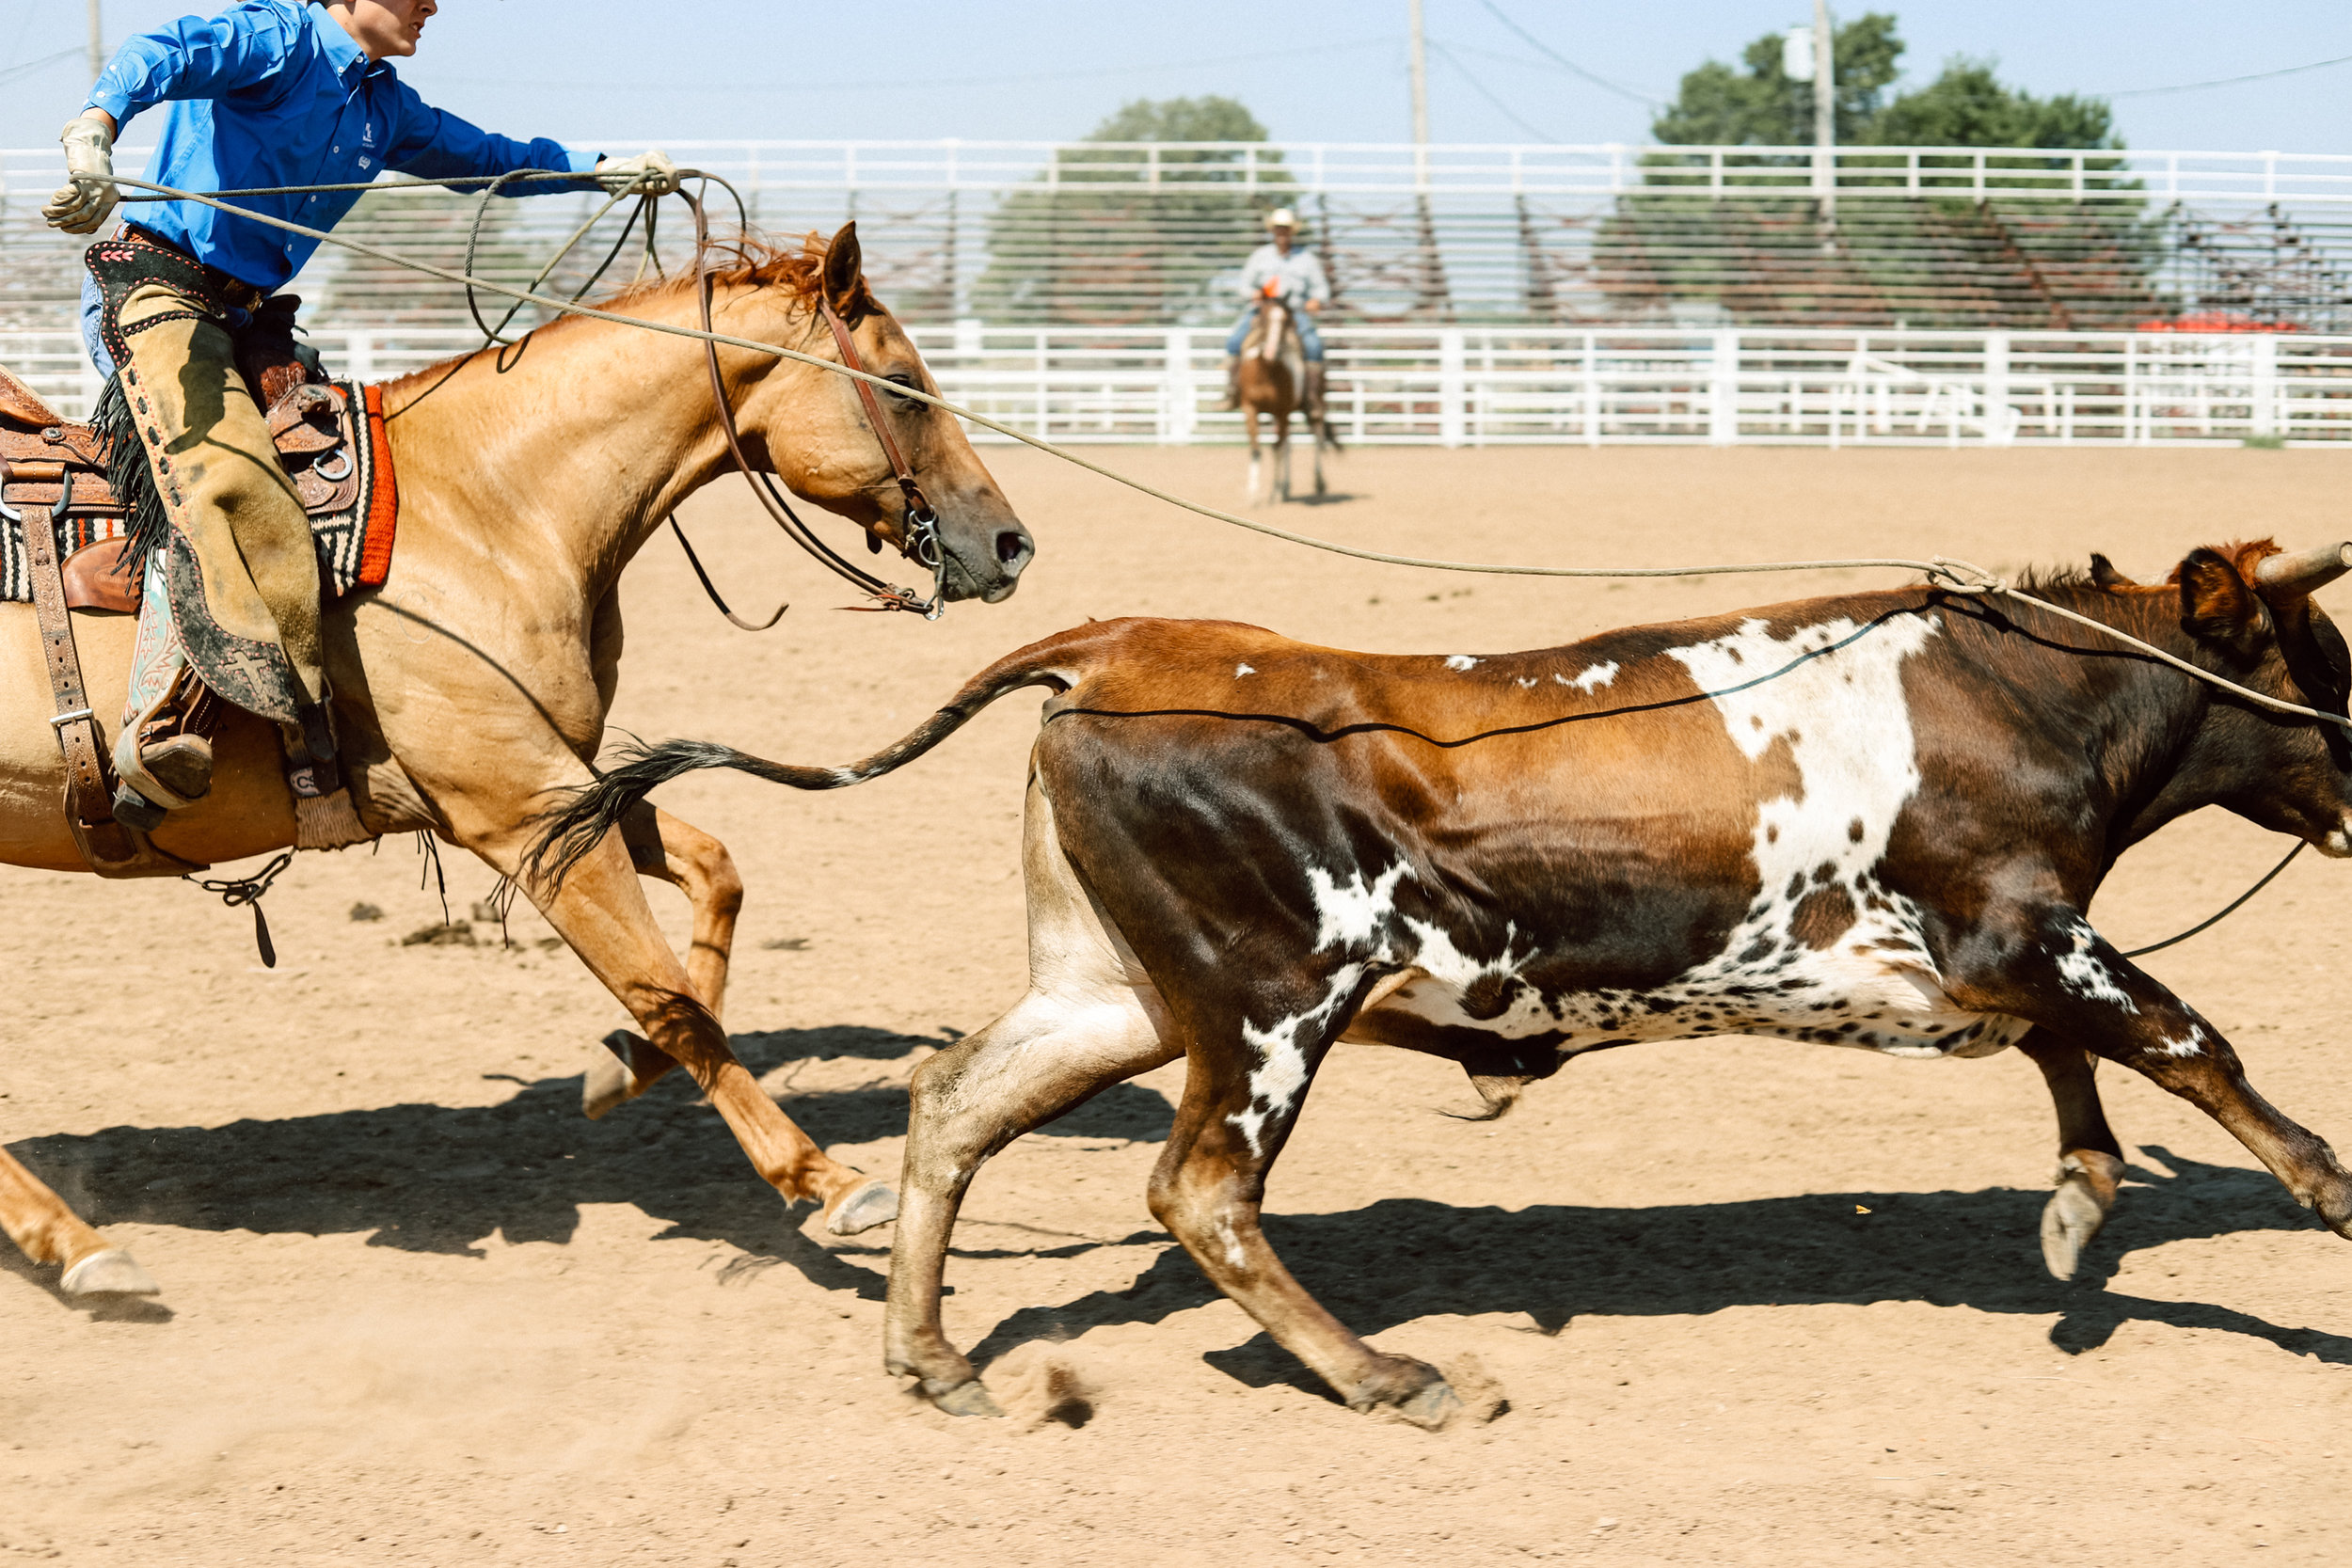 A rider competes in a cattle roping event during the youth ranch rodeo at the 101 Arena in Ponca City, Oklahoma on July 27, 2019.